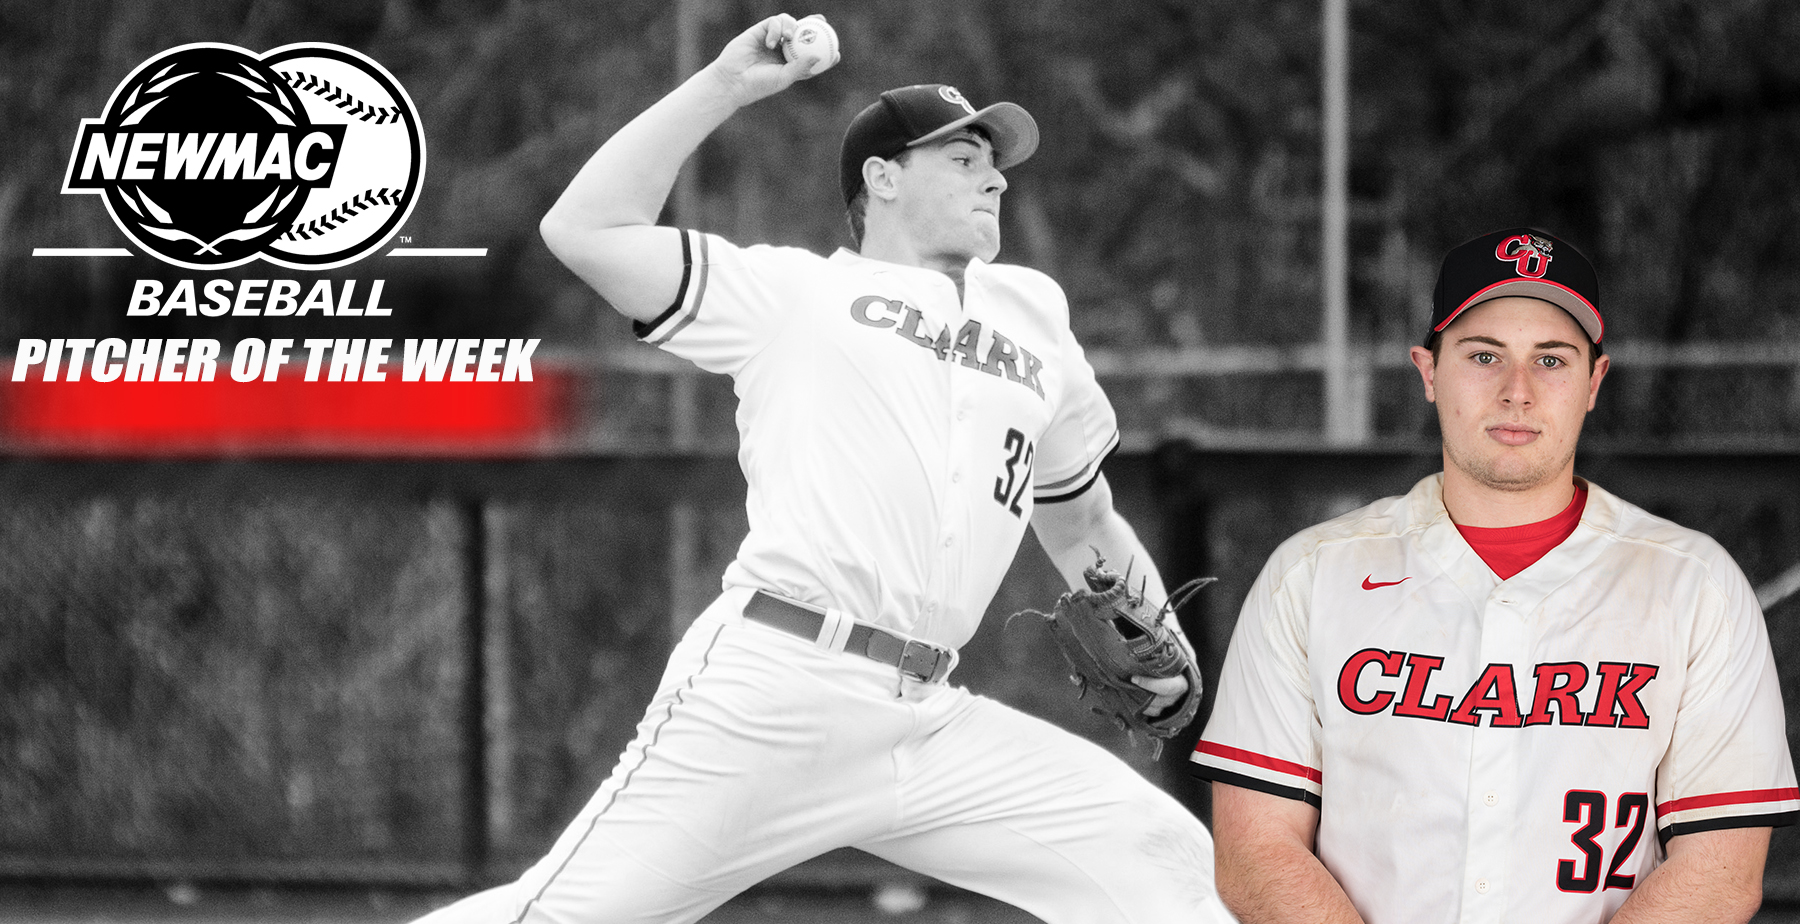 Slepkow Named NEWMAC Baseball Pitcher of the Week